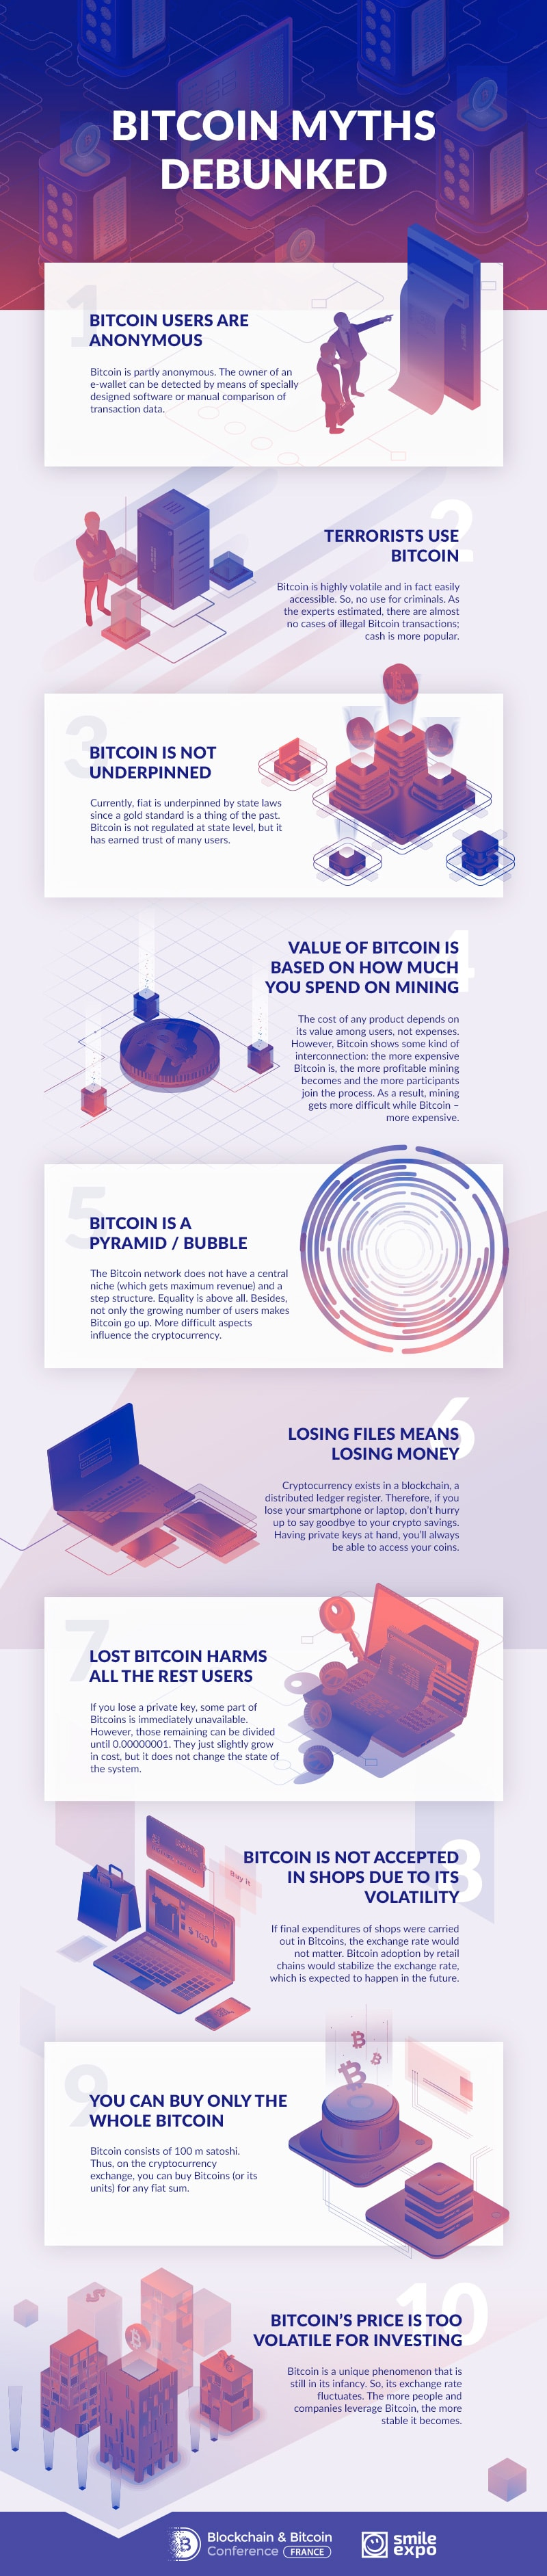 Infographic: Bitcoin myths debunked